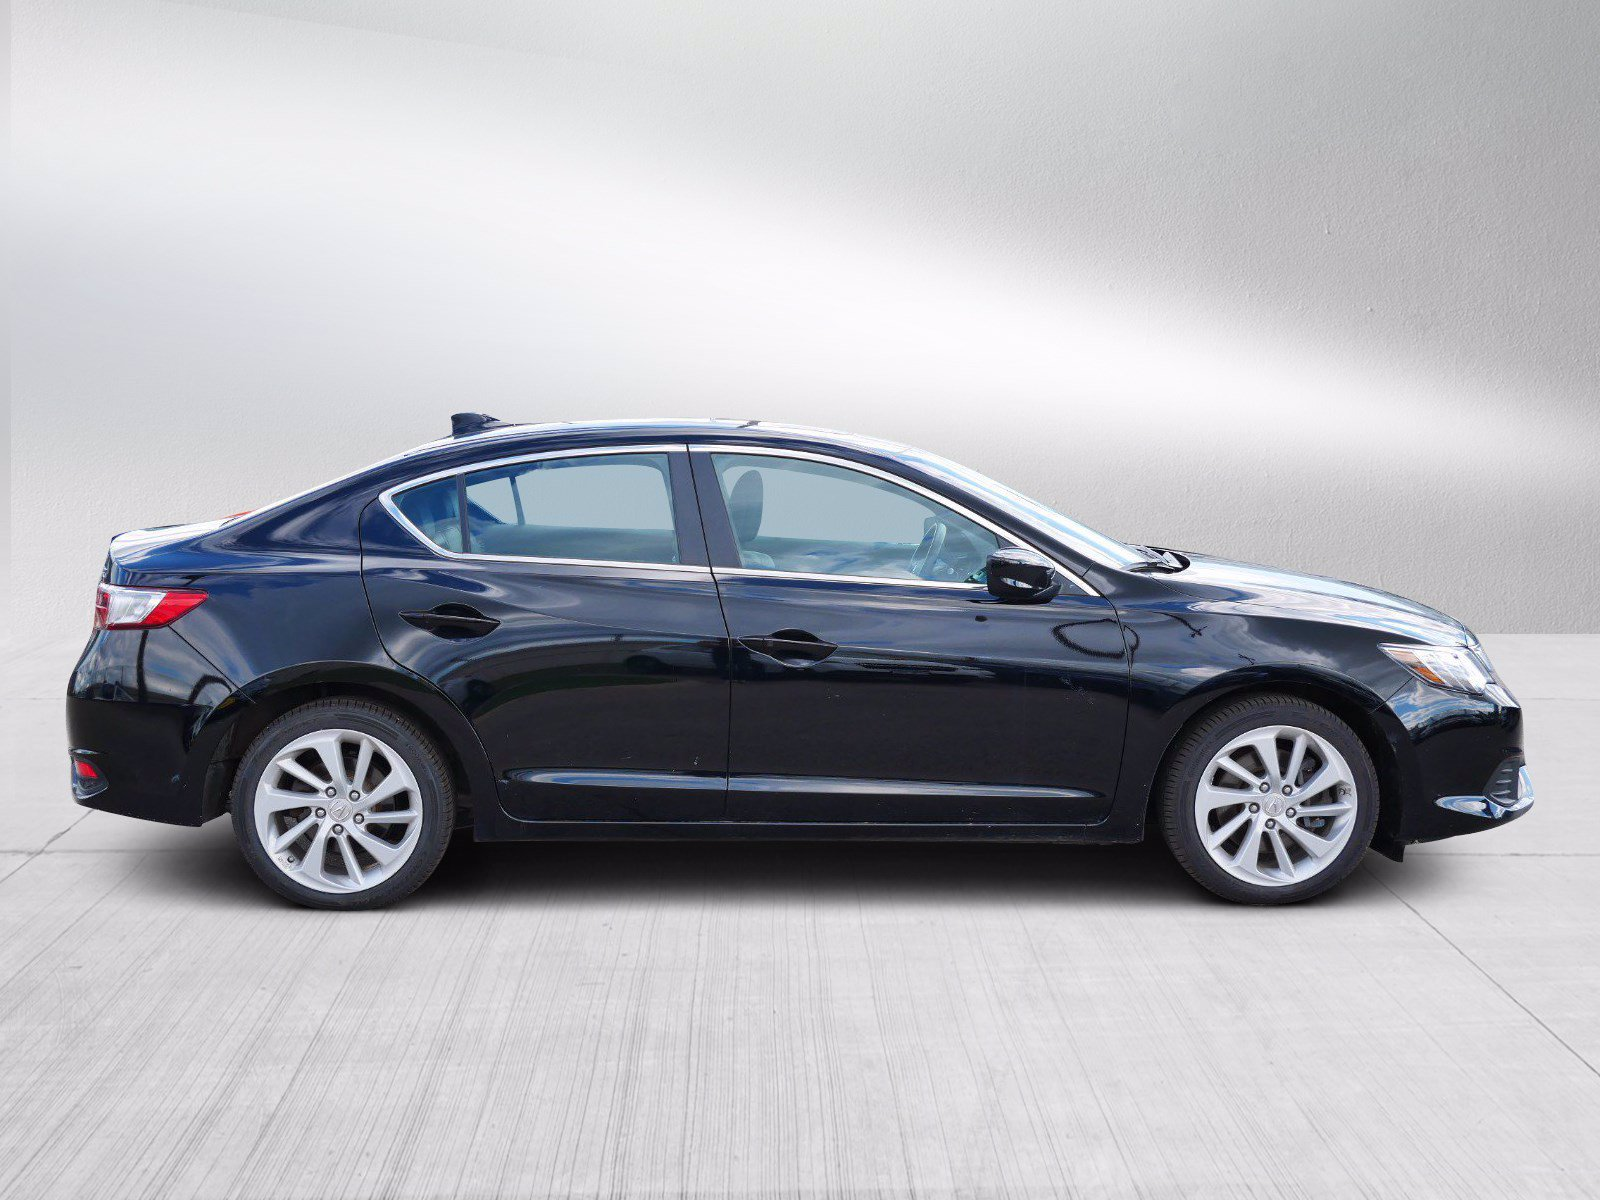 Certified 2018 Acura ILX Technology Plus with VIN 19UDE2F72JA004289 for sale in Bloomington, Minnesota